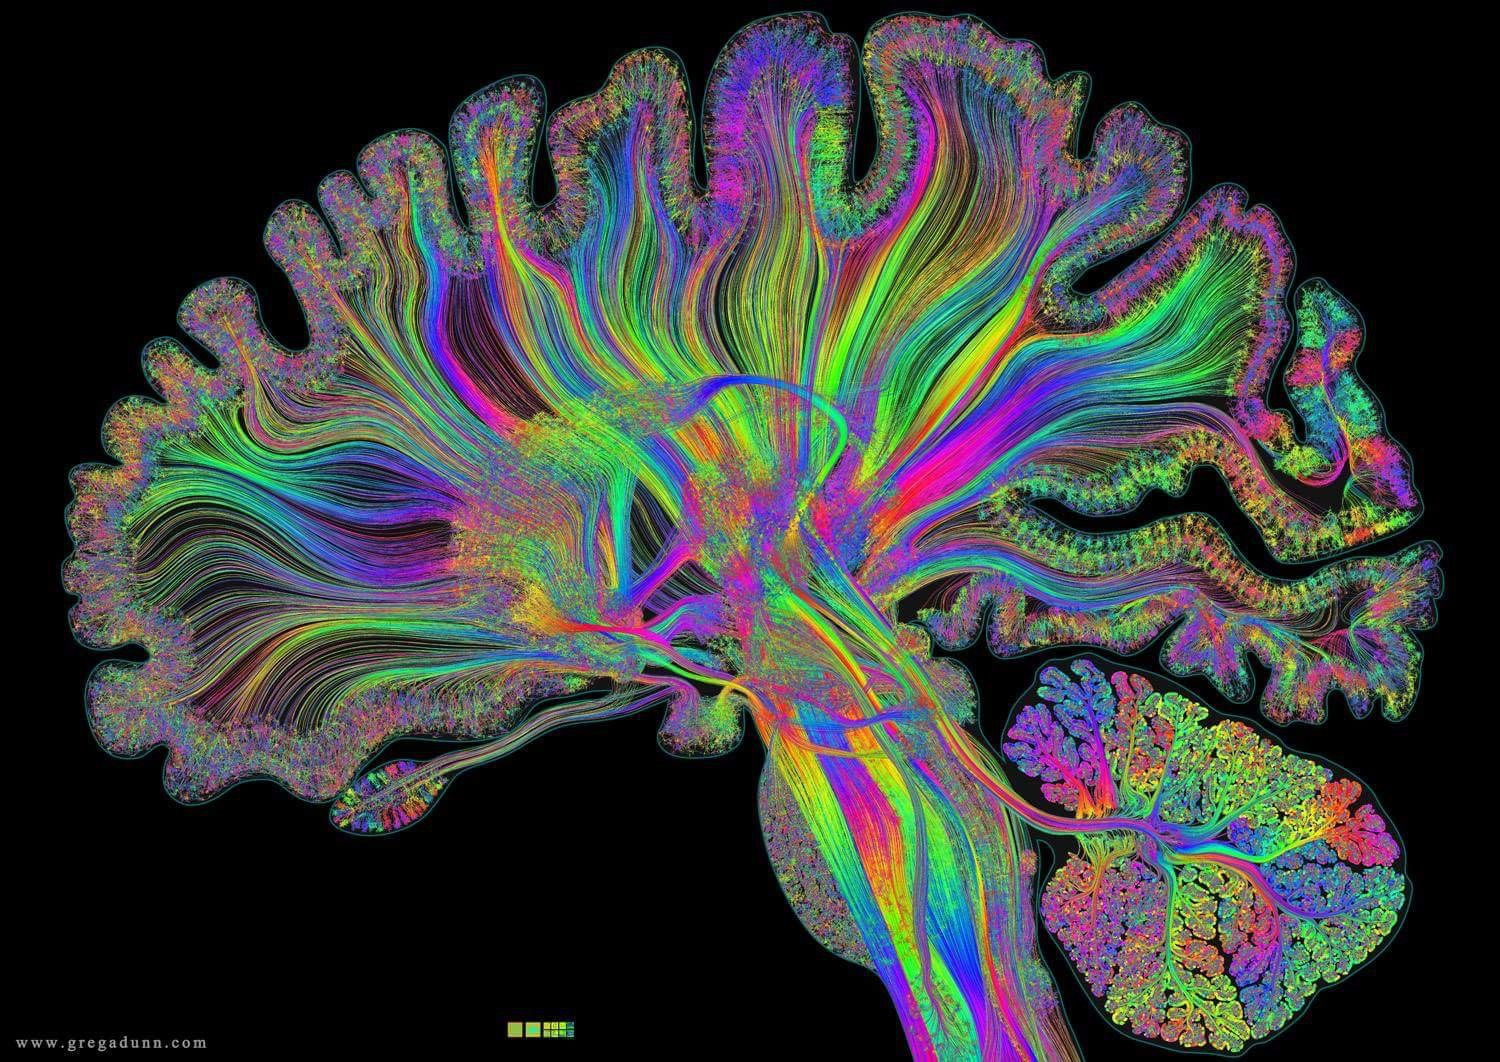 Detailed map of the brain